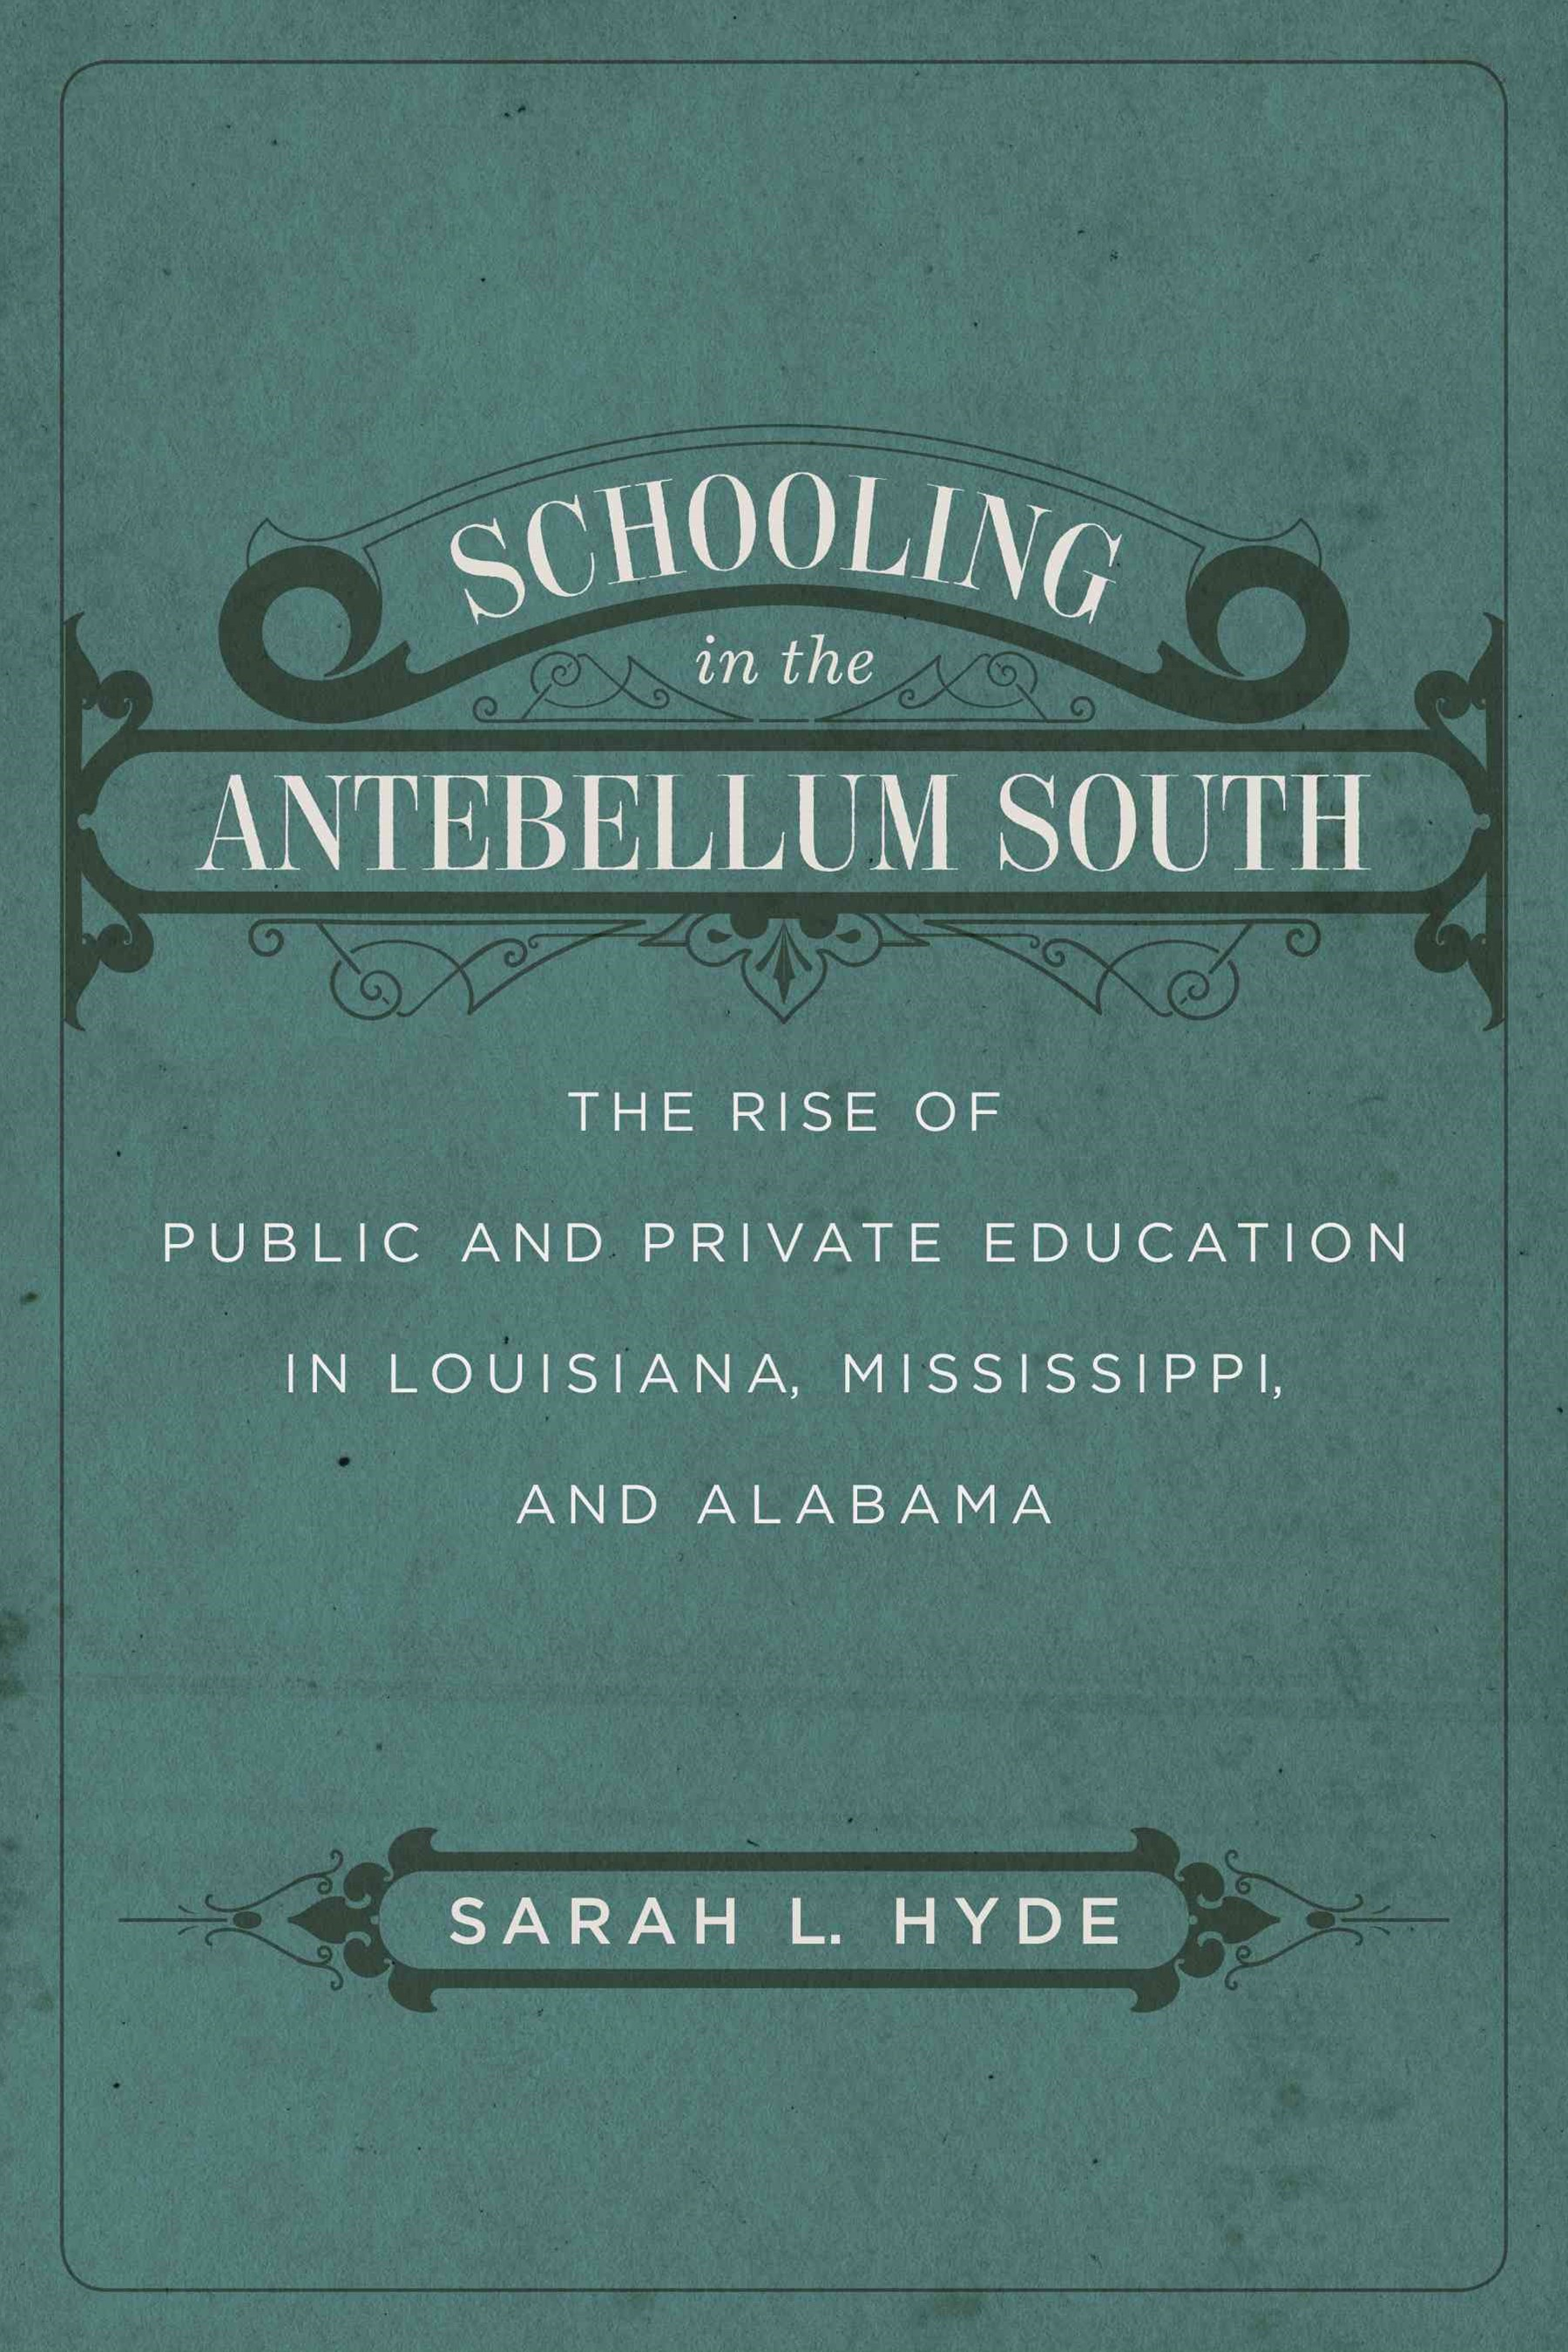 Schooling in the Antebellum South